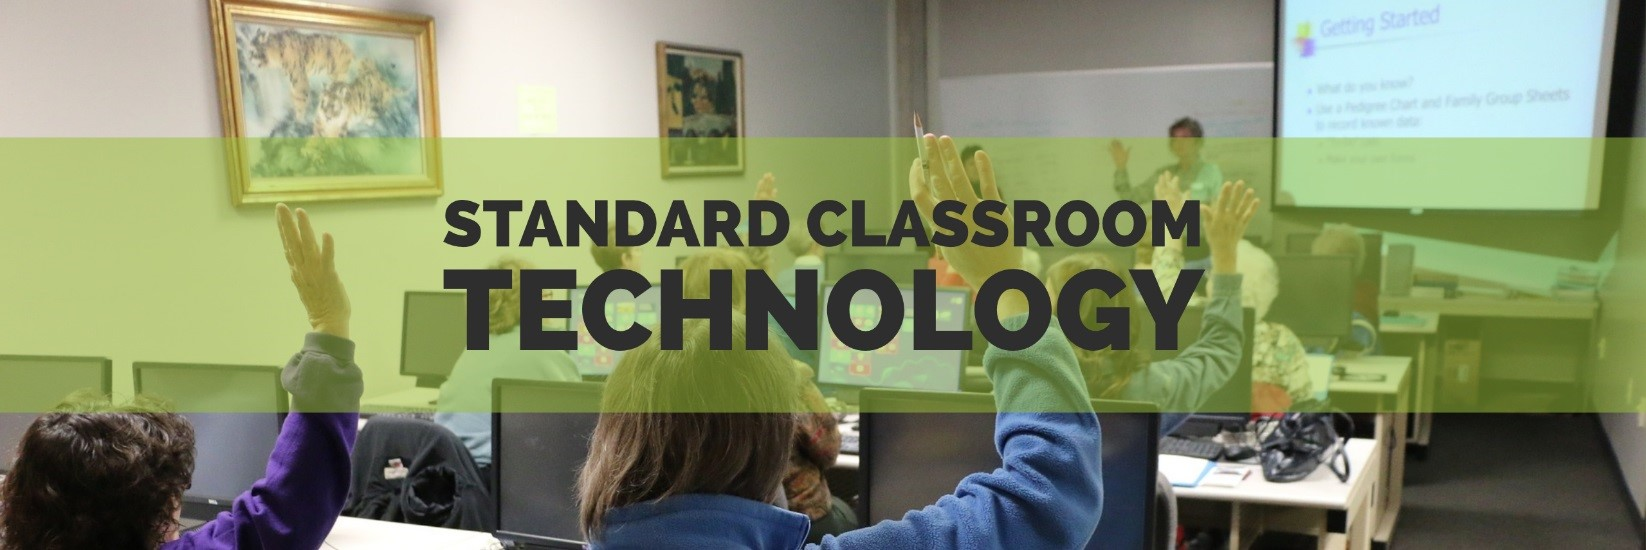 "Students raising hands in classroom with text ""Standard Classroom Technology"""